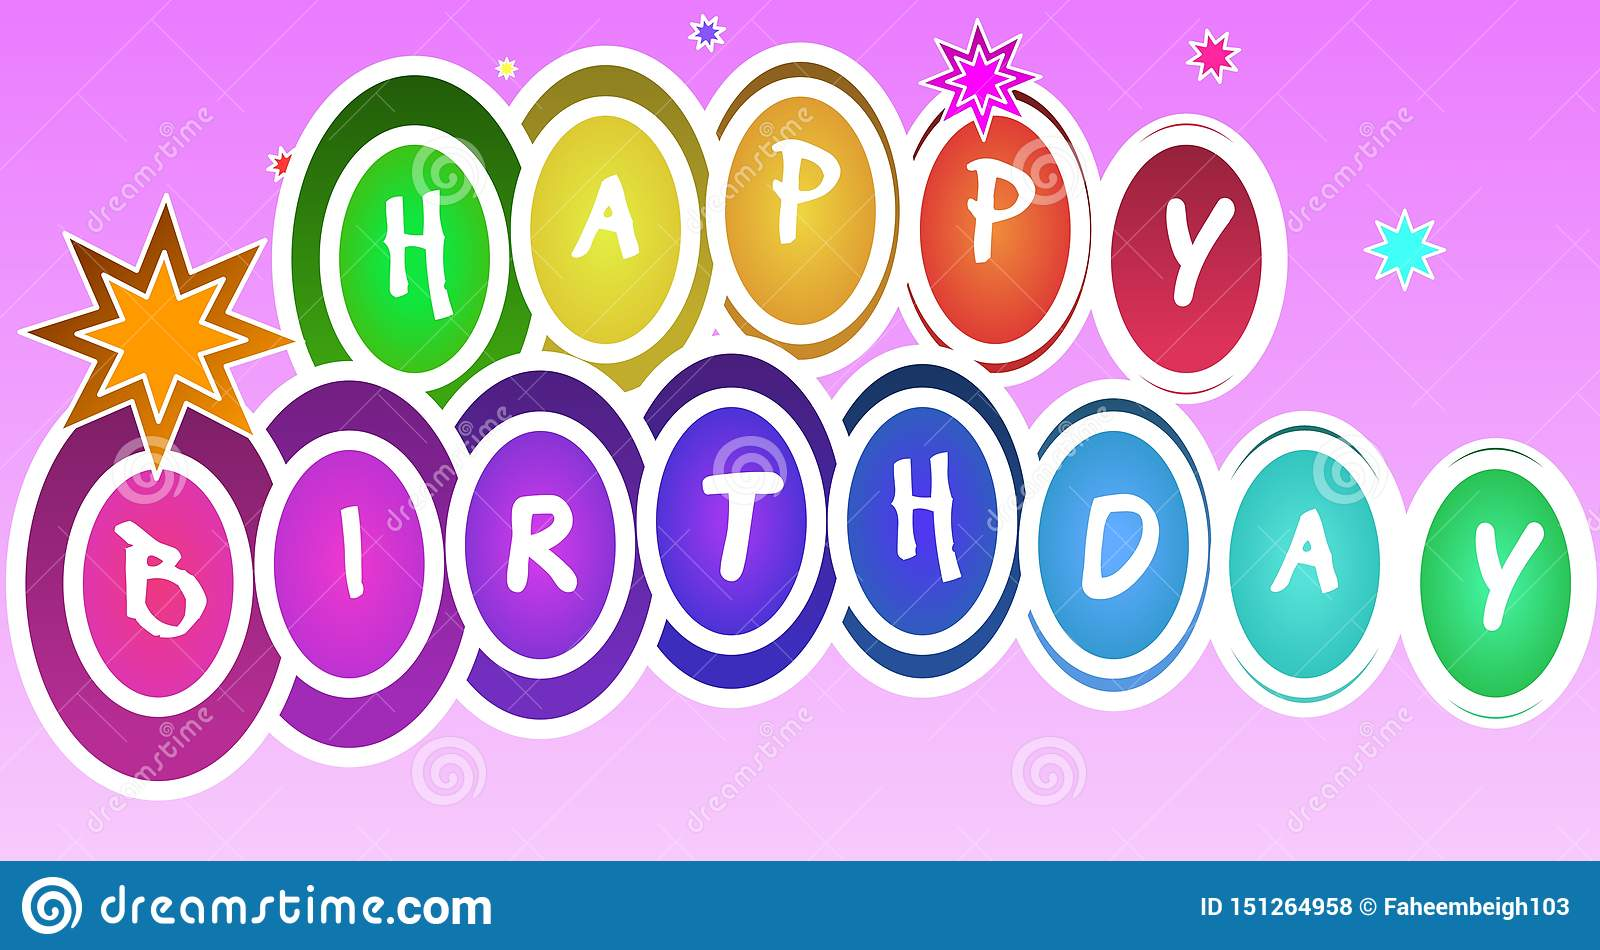 Colourful Decorative Happy Birthday Design On A Pink Gradient.